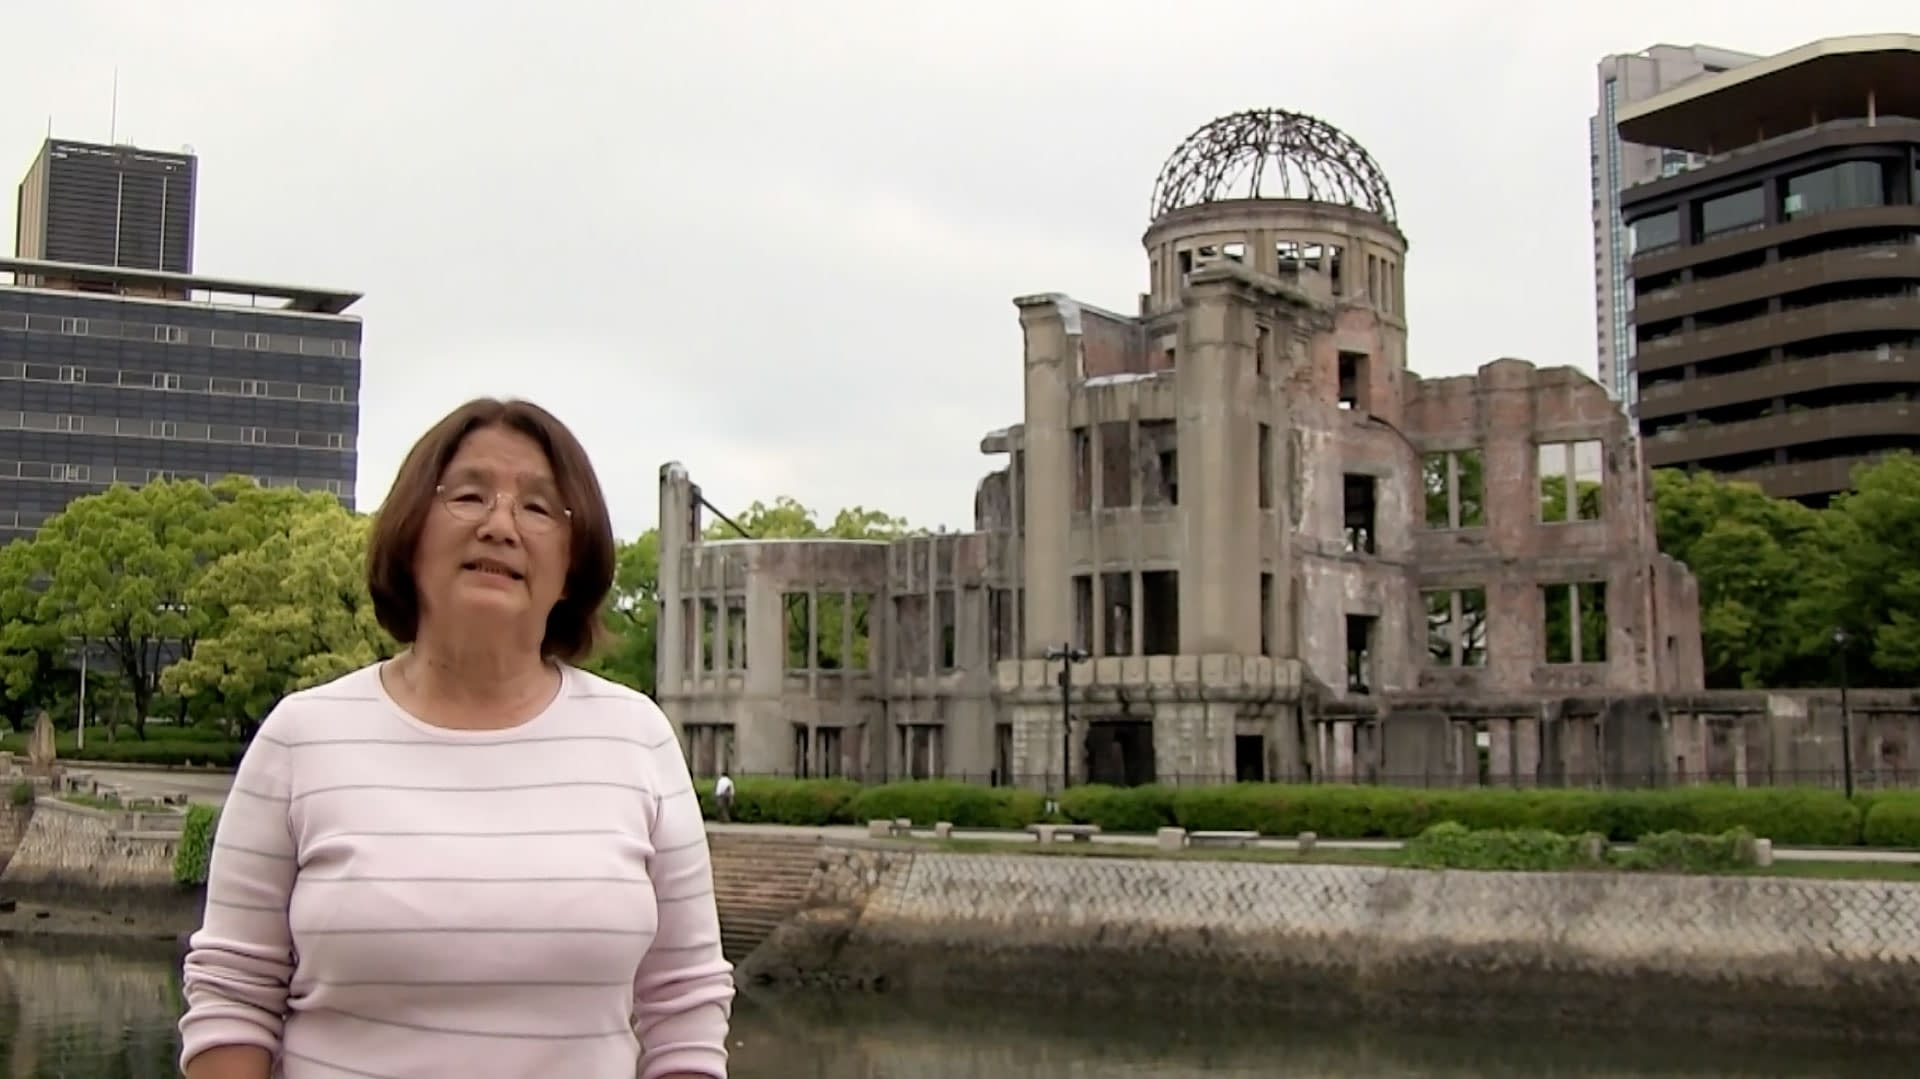 Presentation in front of the A-bomb Dome